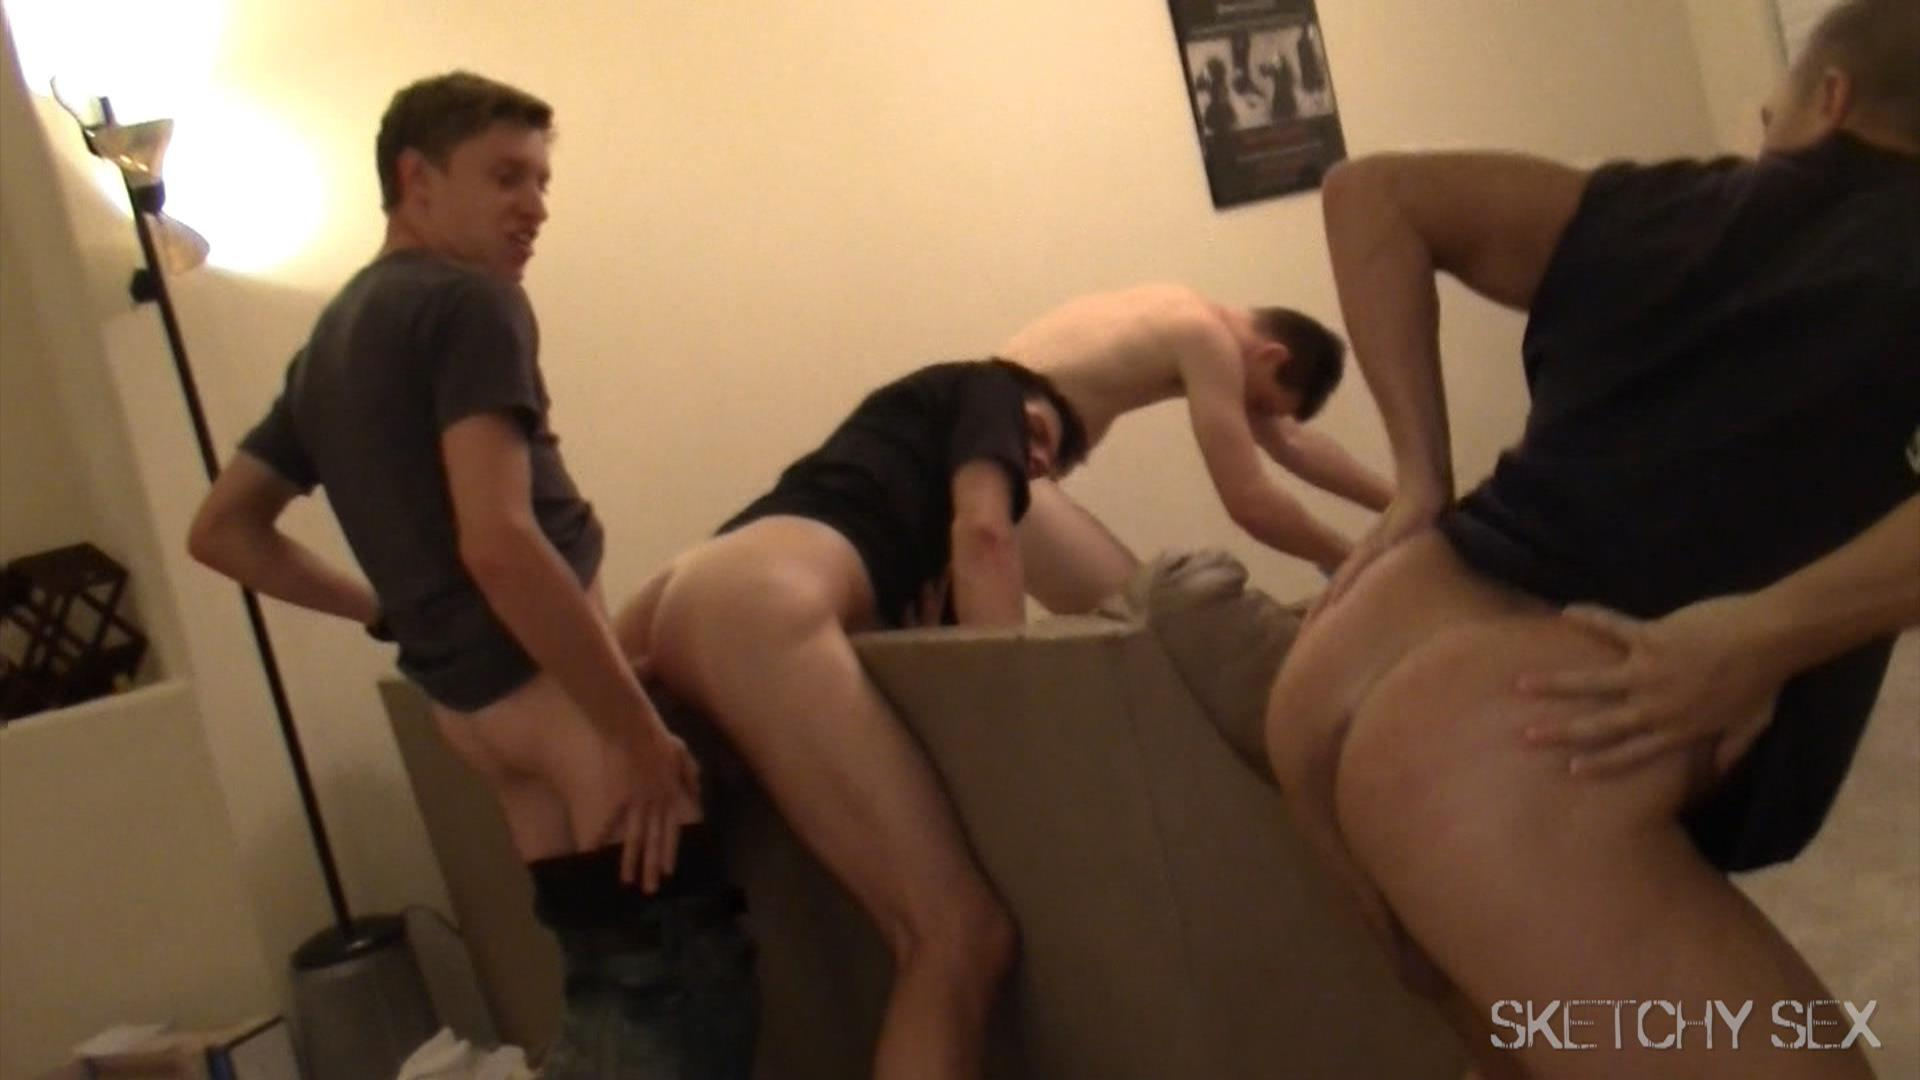 Sketchy-Sex-Anonymous-Bareback-Sex-Party-Big-Dick-Amateur-Gay-Porn-13 Getting Tag Teamed At A Bareback Anonymous Sex Encounter